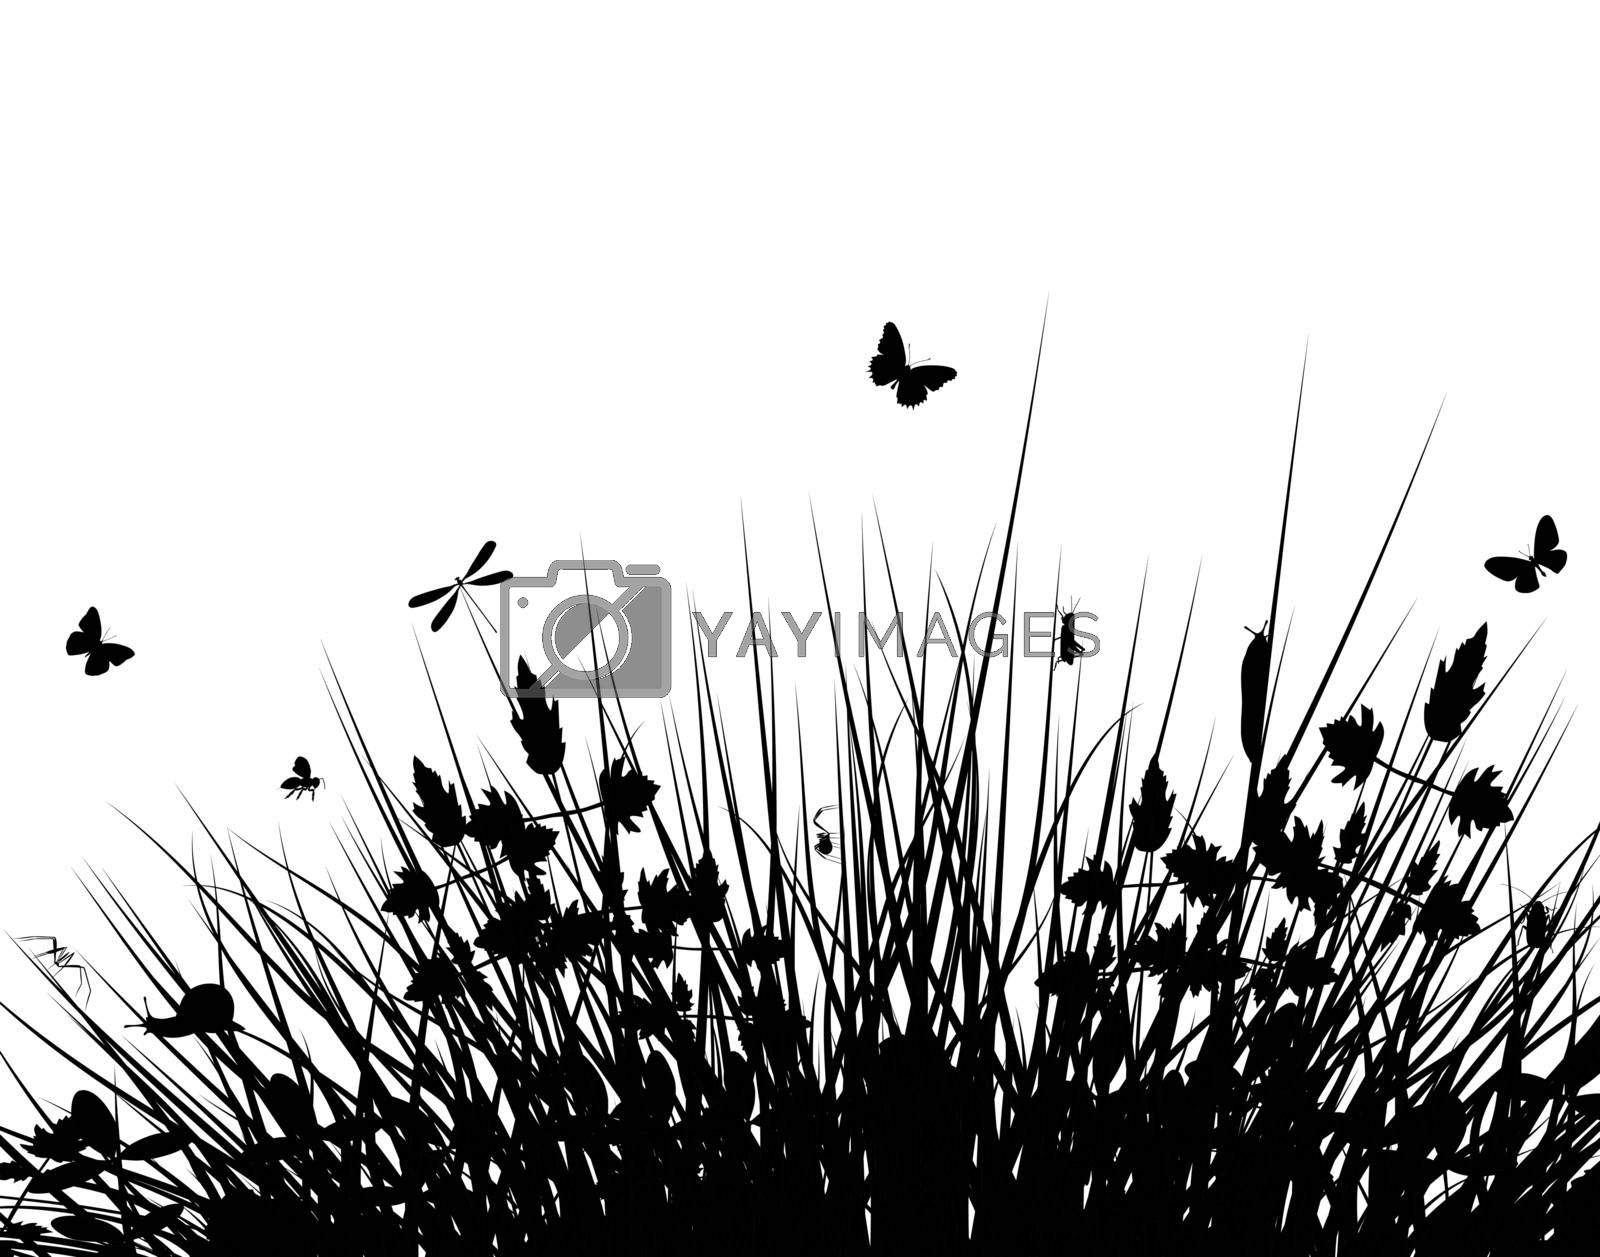 Meadow silhouette by Tawng